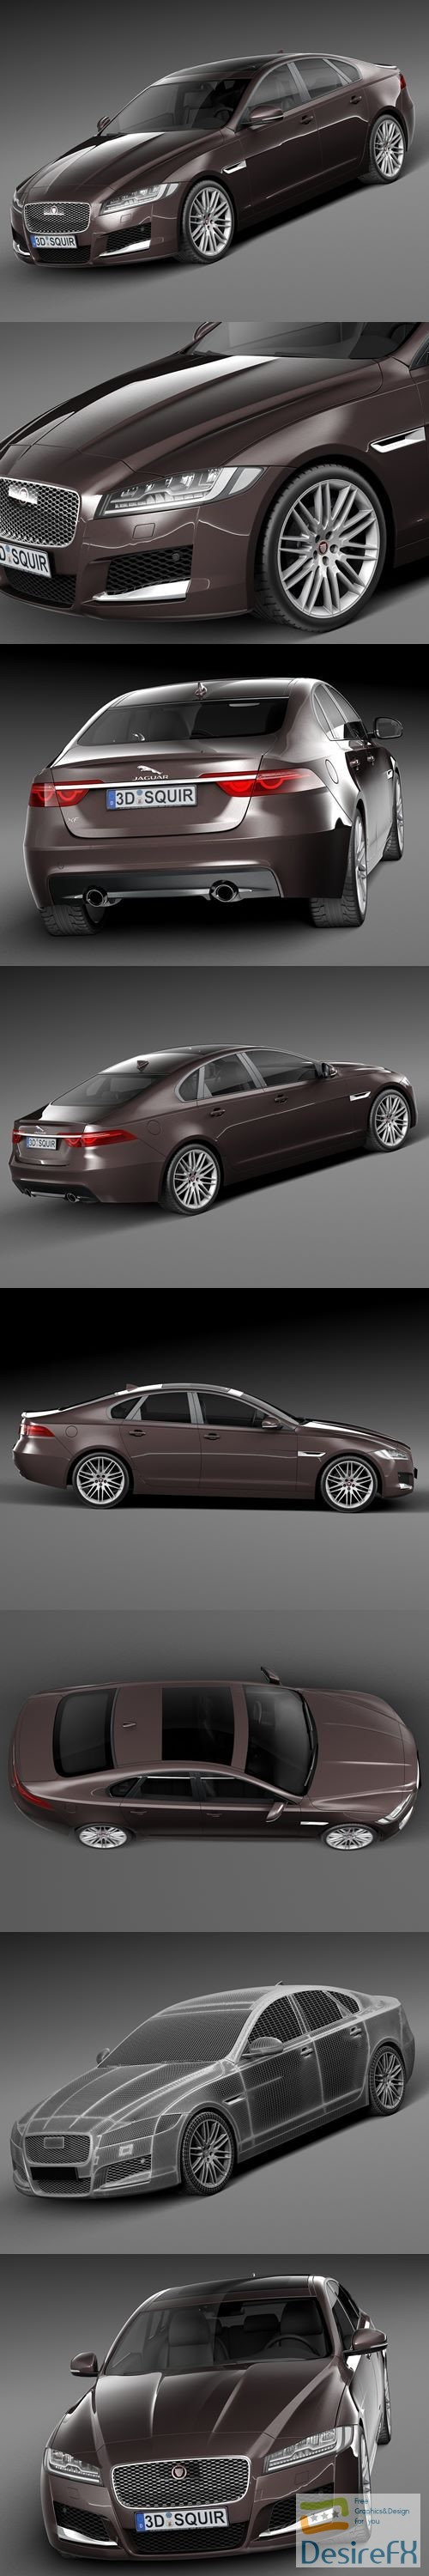 3d-models - Jaguar XF 2016 3D Model